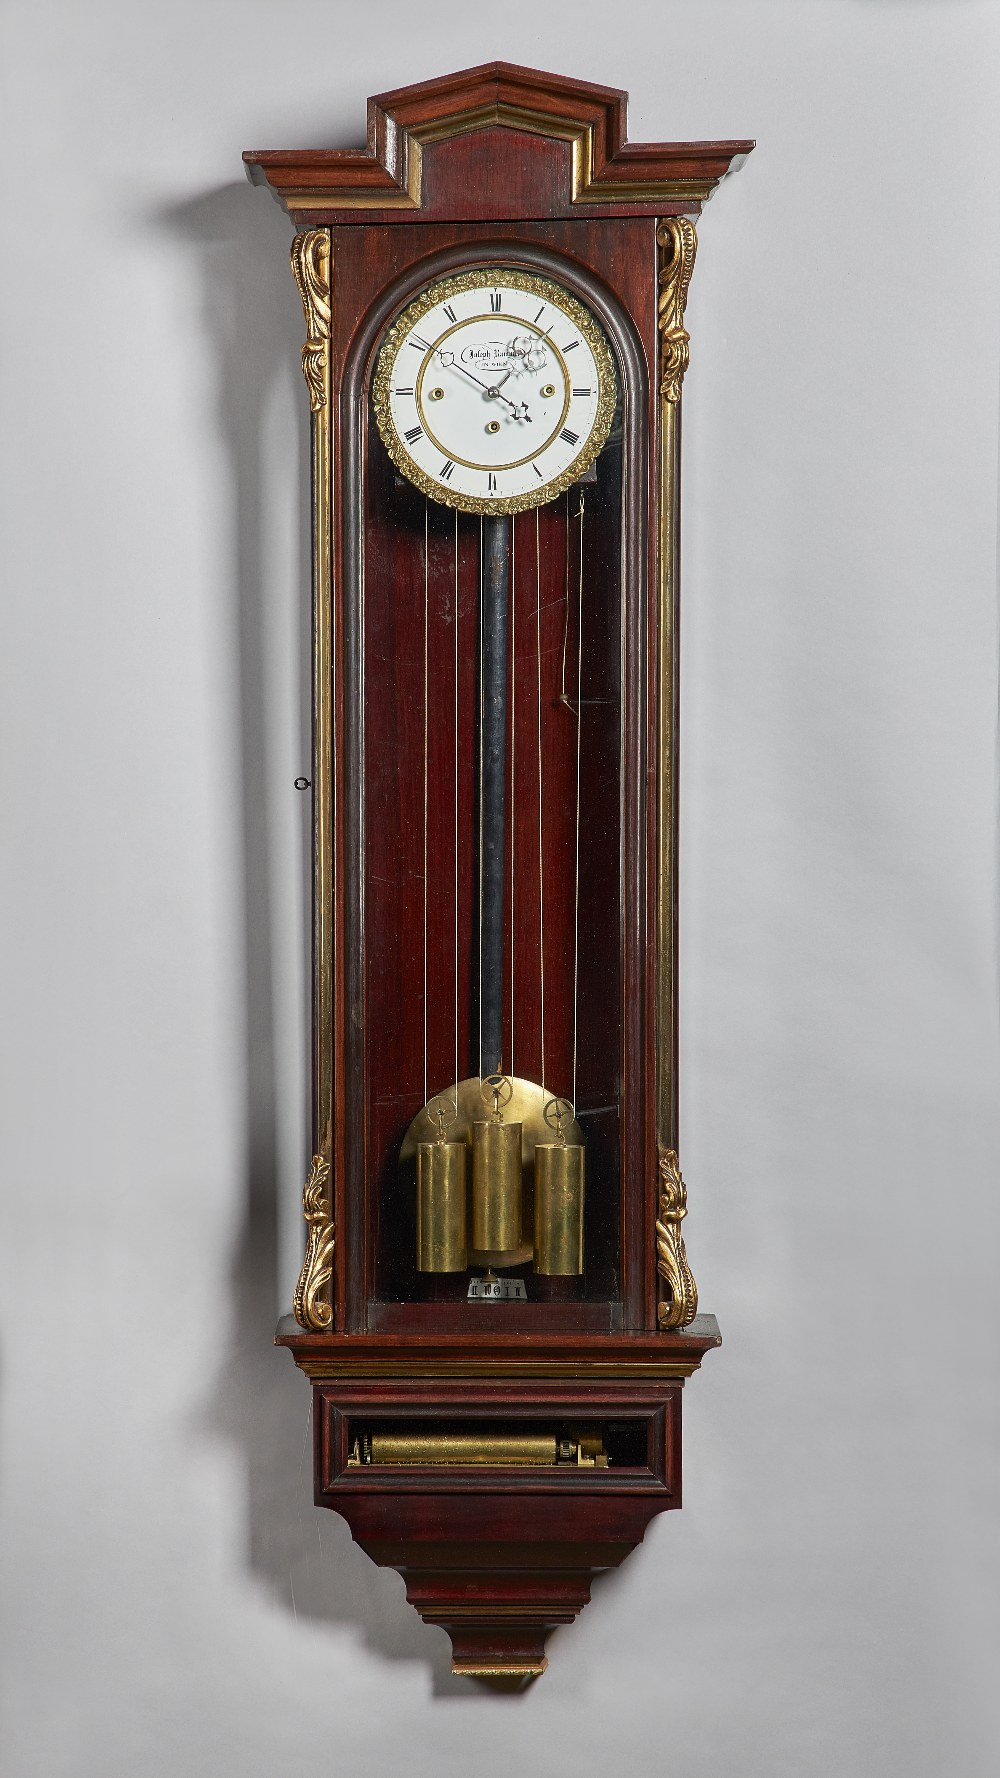 Lot 708 - A Viennese parcel-gilt mahogany three-train quarter chiming regulator with music box By Joseph